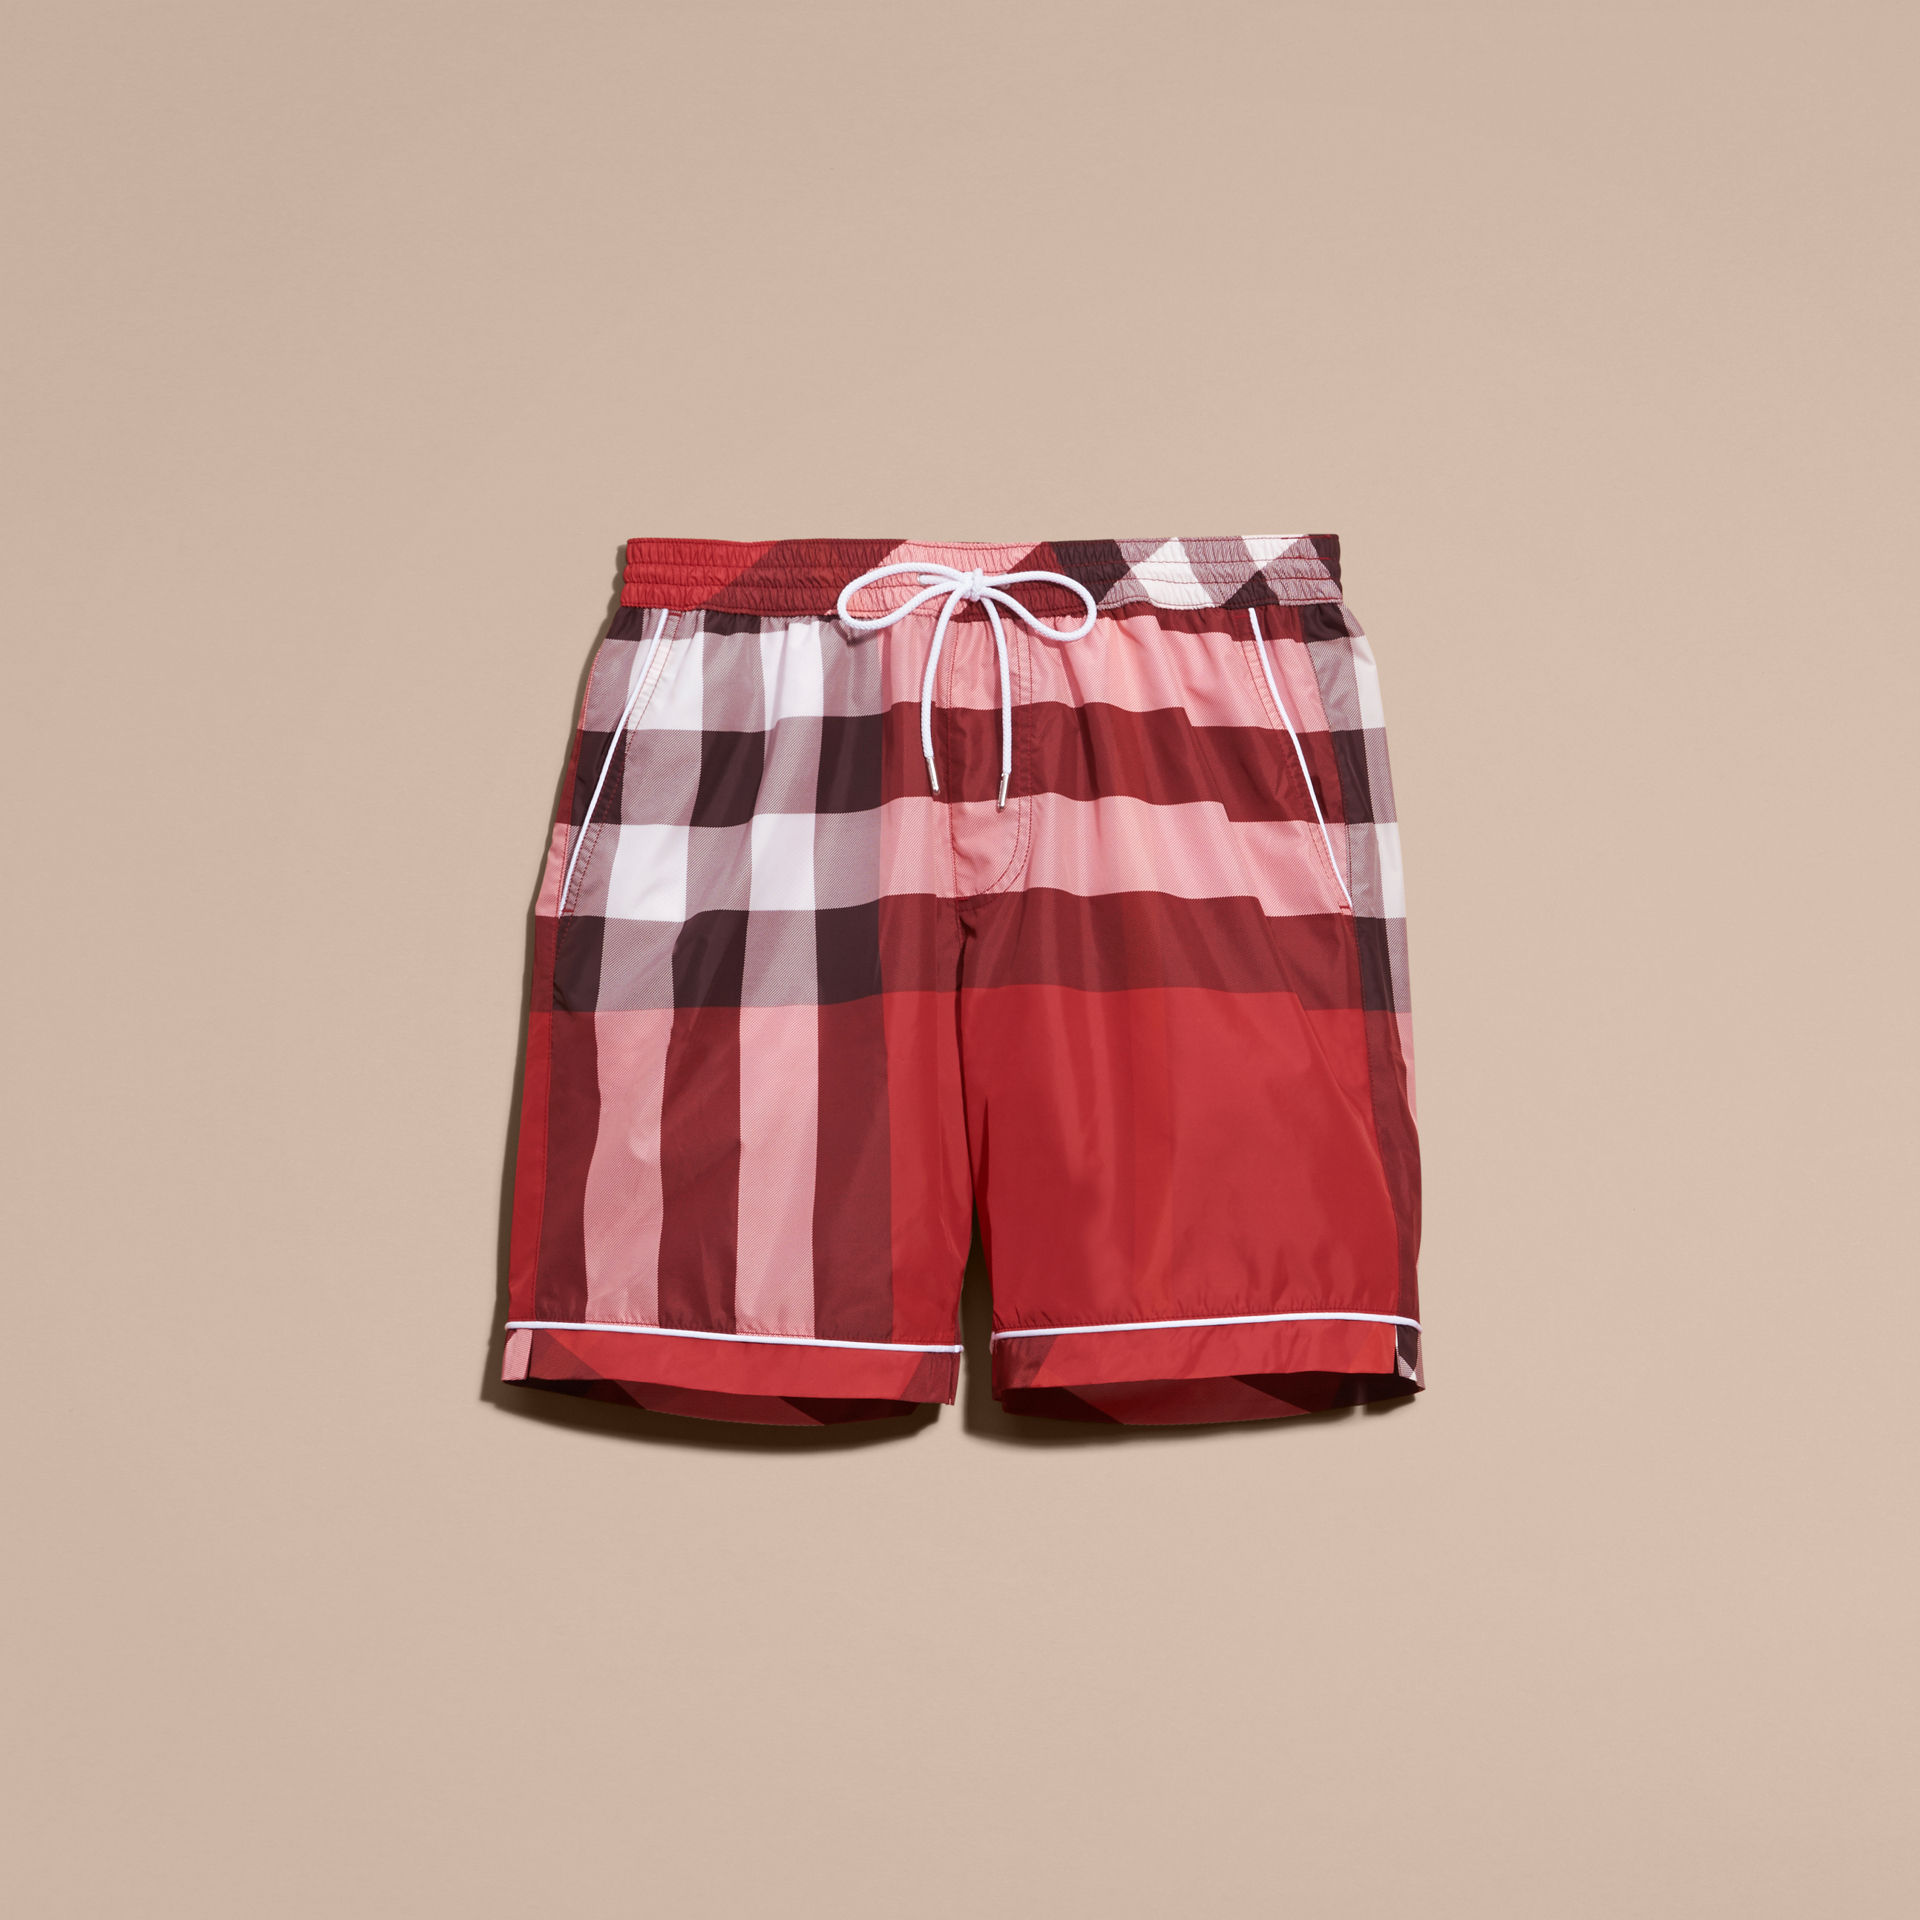 Burberry Parade Red Check Print Swim Shorts with Piping Detail